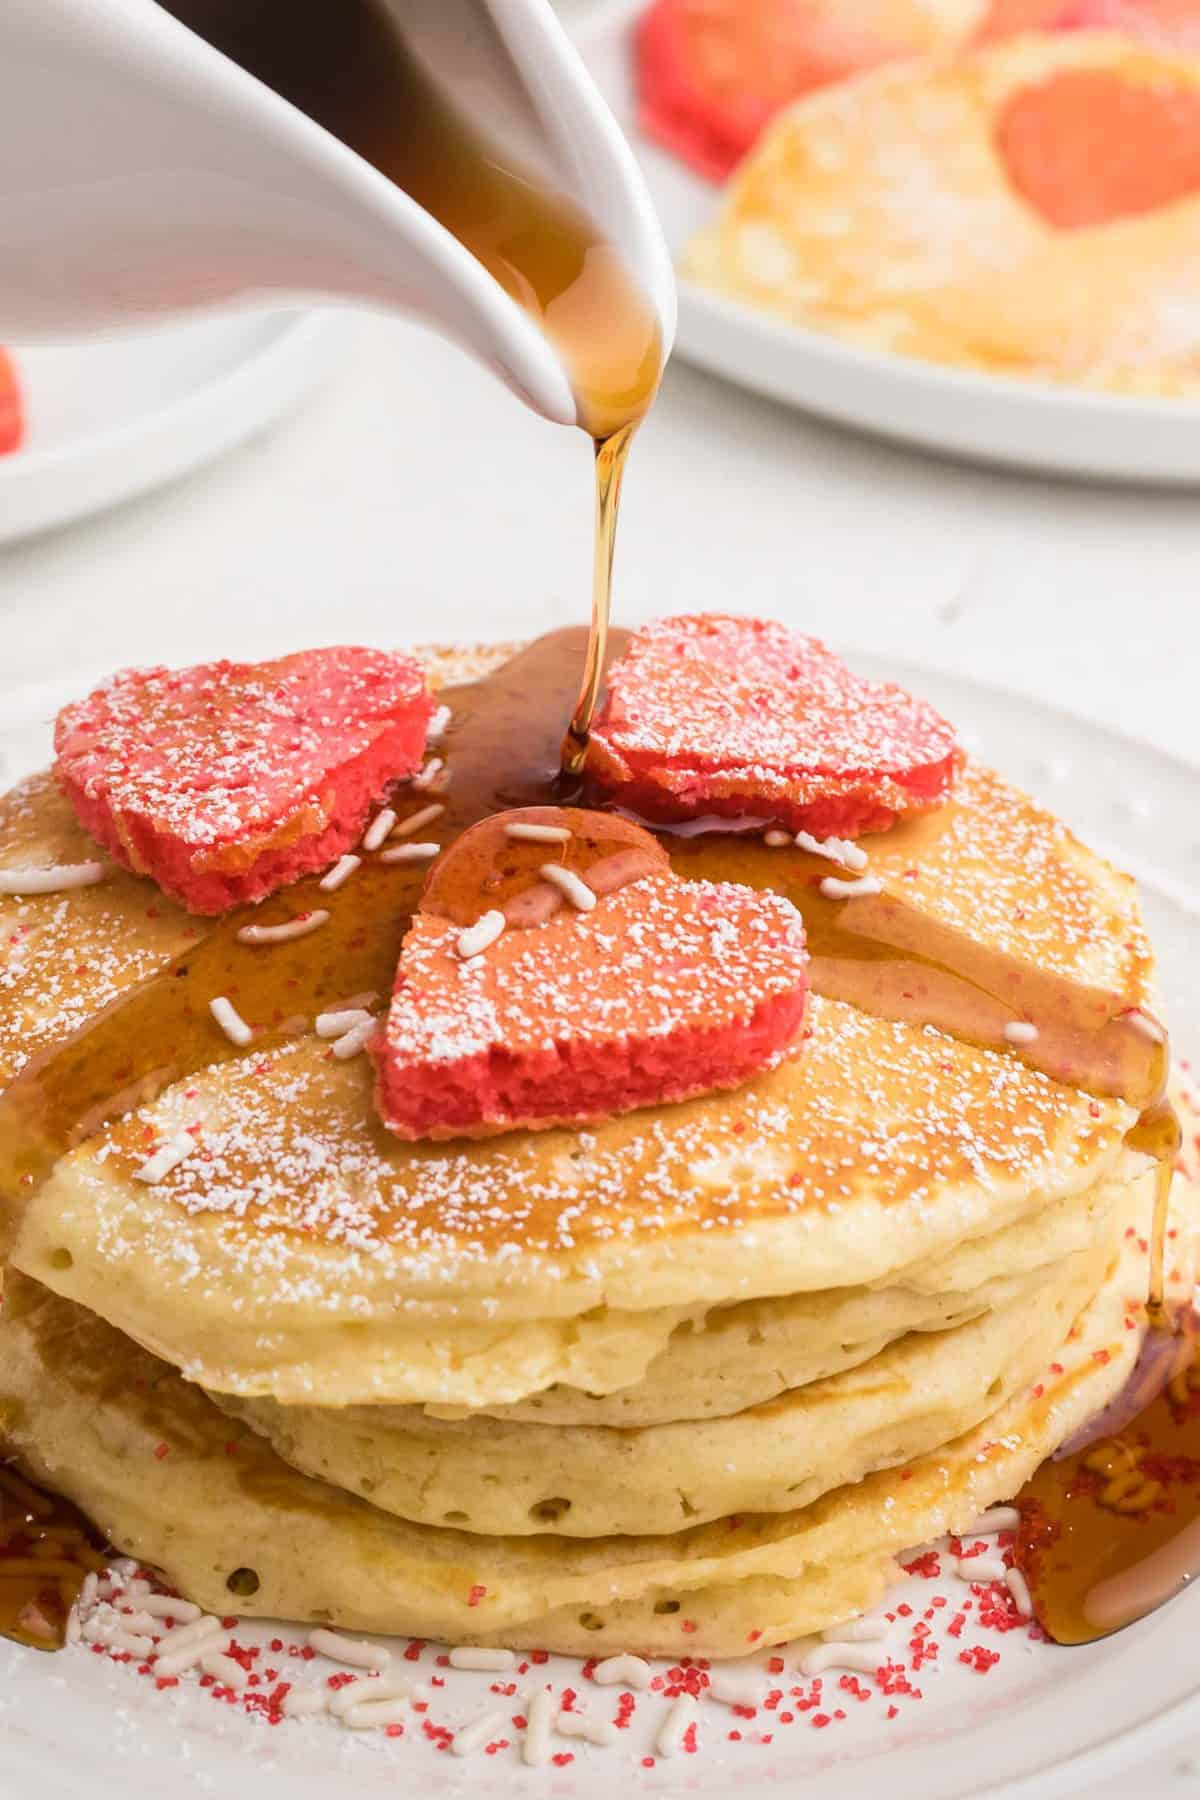 Syrup being poured onto pancakes with more heart-shaped pancakes on top.